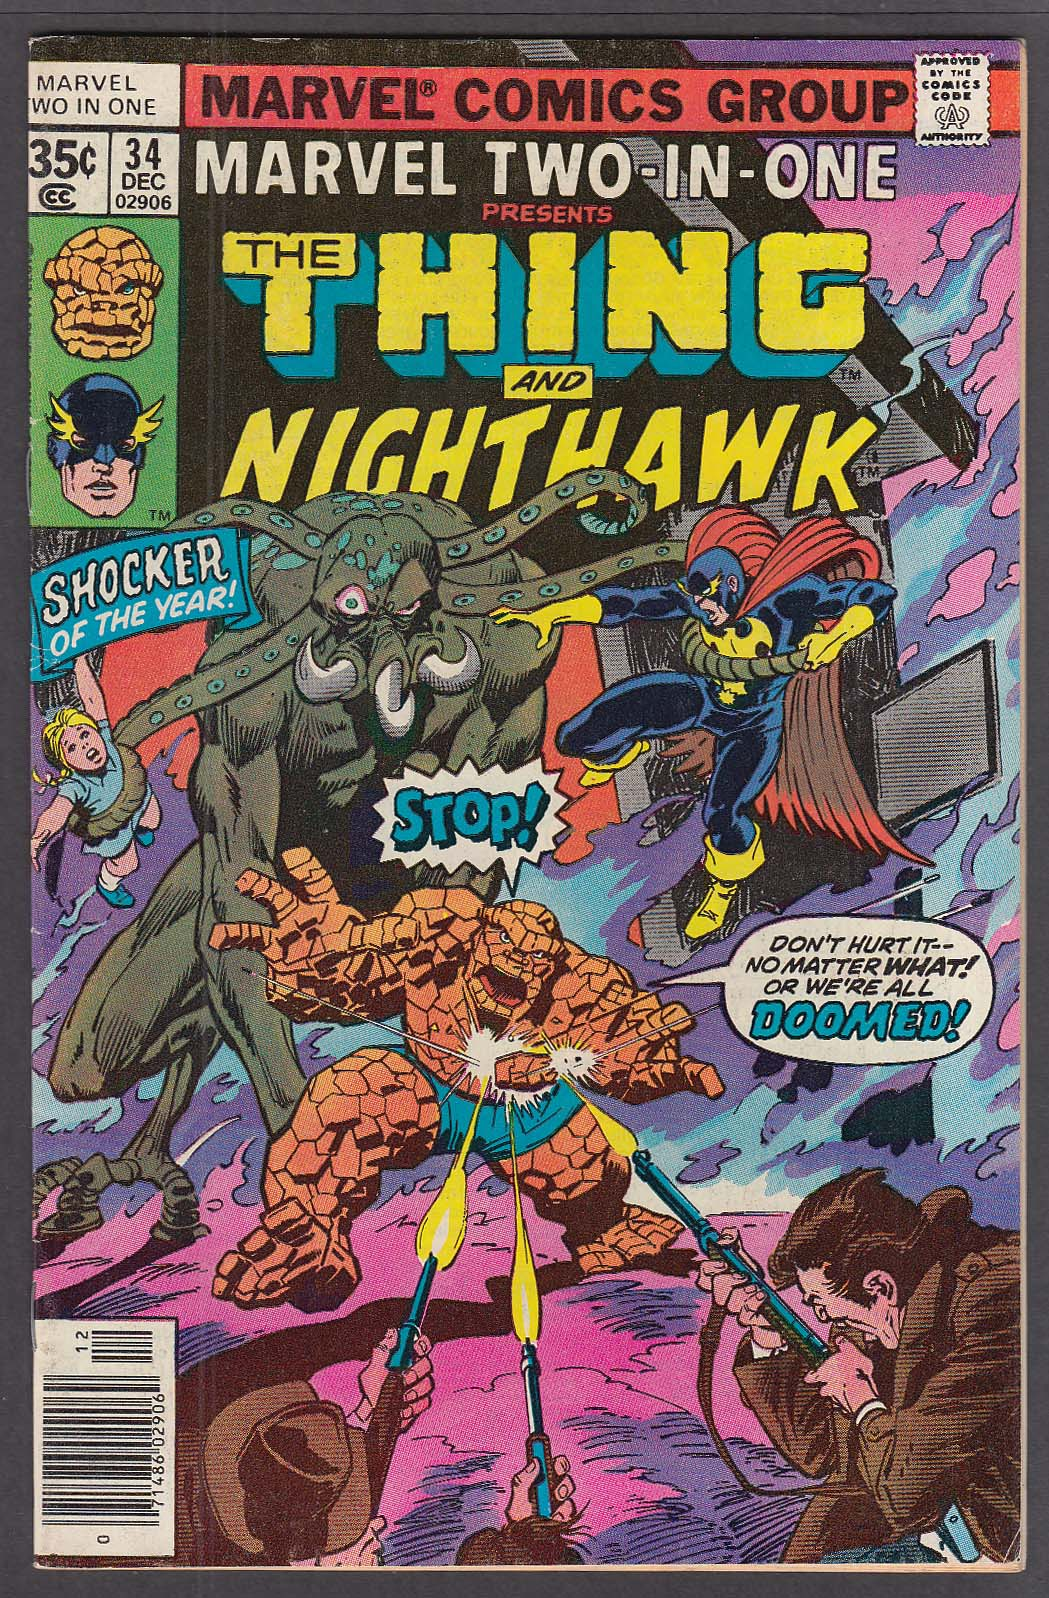 Image for MARVEL TWO-IN-ONE #34 The Thing Nighthawk comic book 12 1977